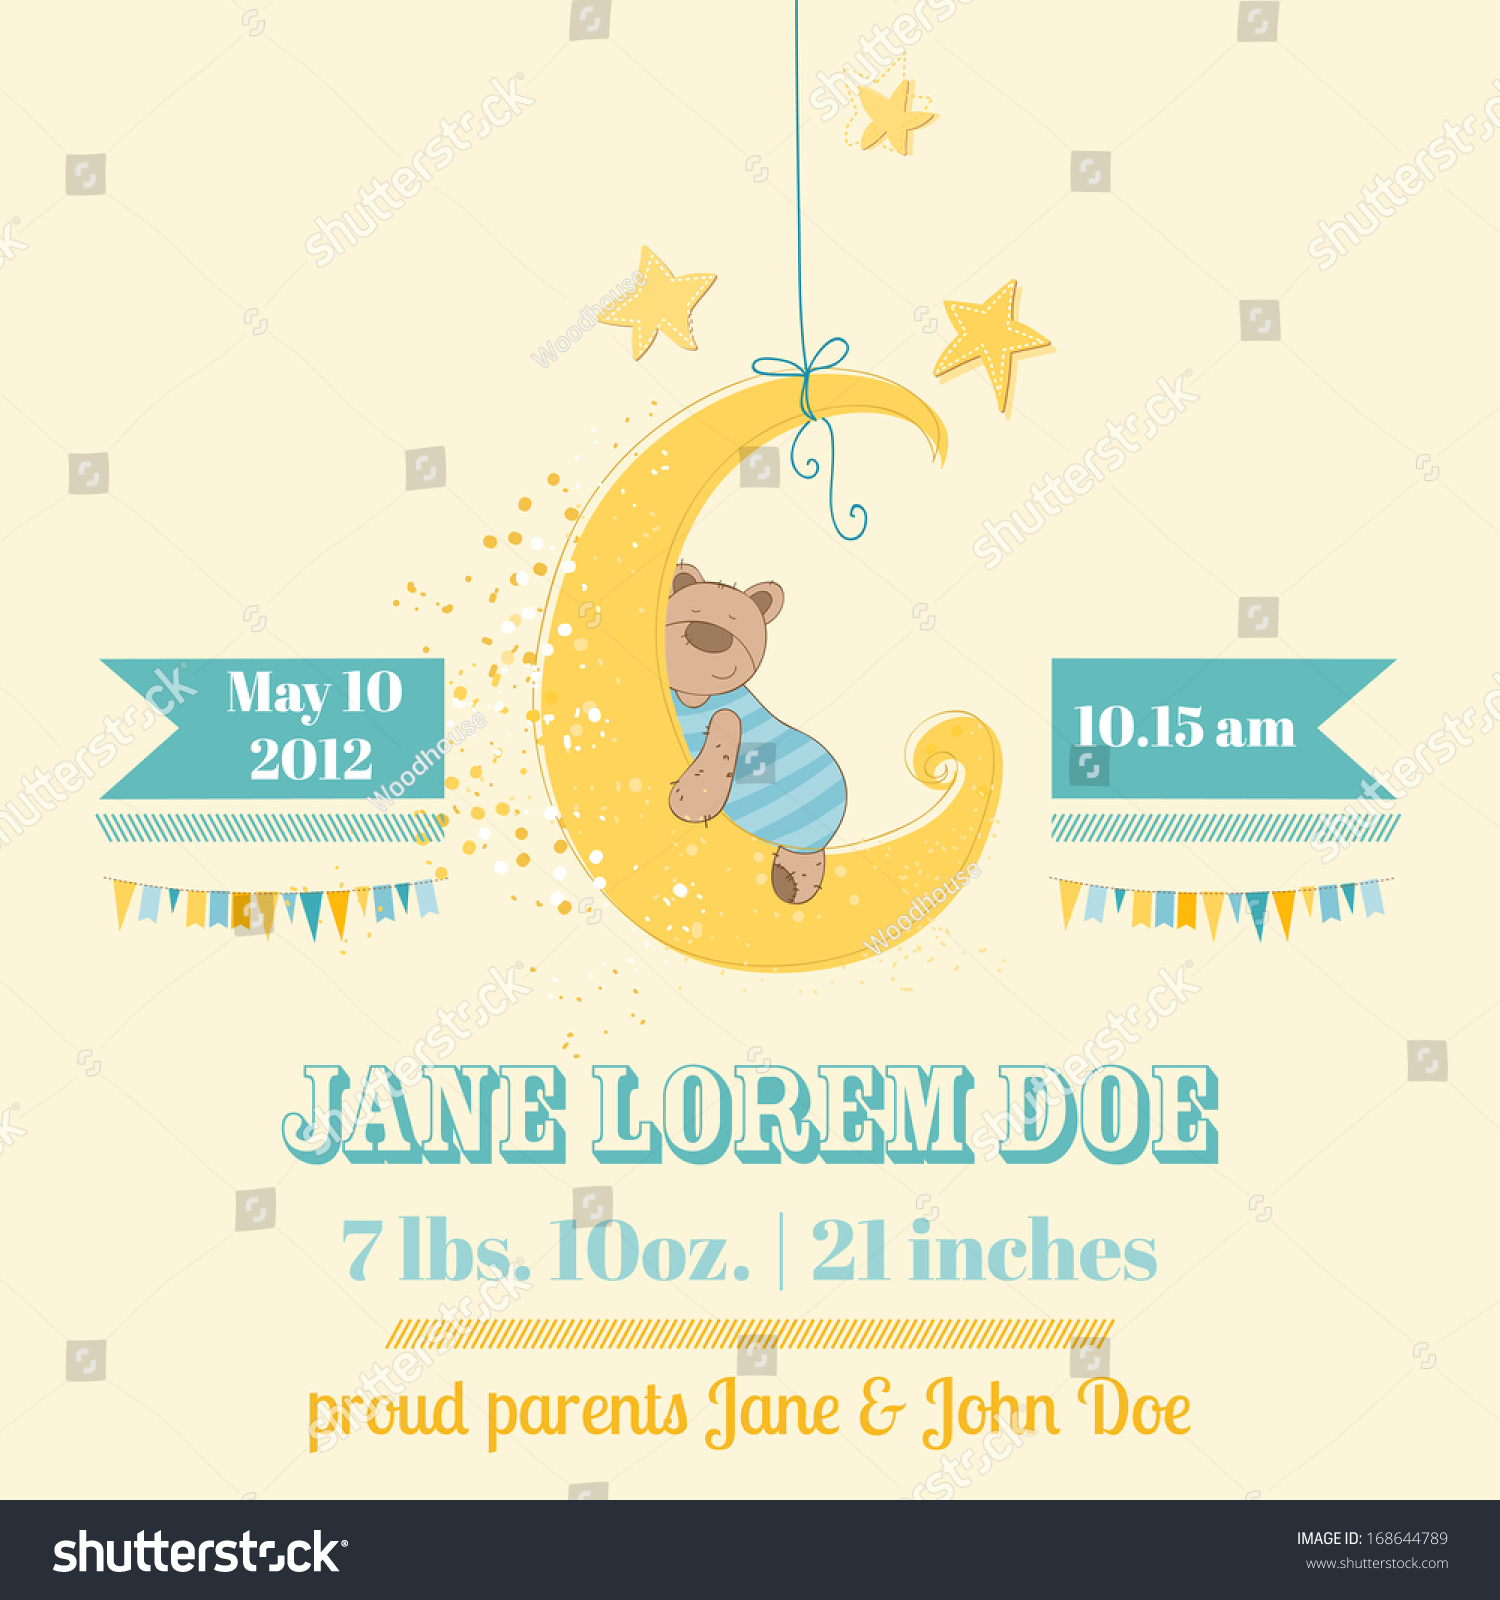 Baby boy arrival card vector by leonart image 600444 vectorstock - Baby Shower Or Arrival Card In Vector 168644789 Wallpaper Gallery Baby Shower Card Vector By